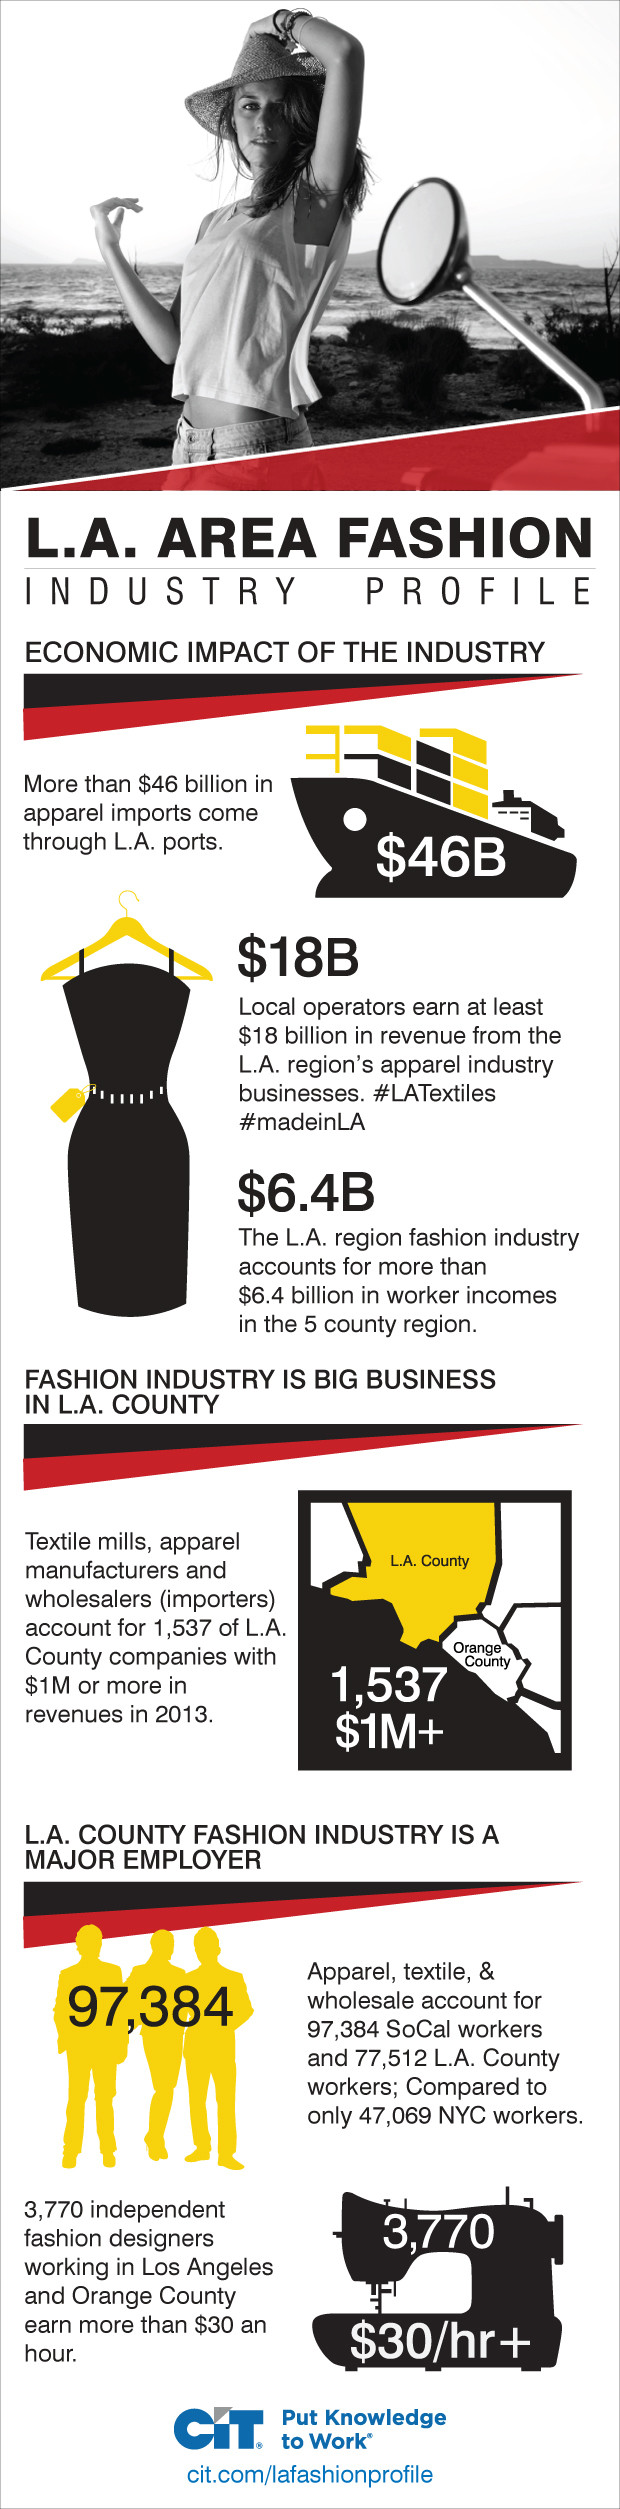 los-angeles-fashion-industry-profile-and-outlook-la-fashion-profile-infographic